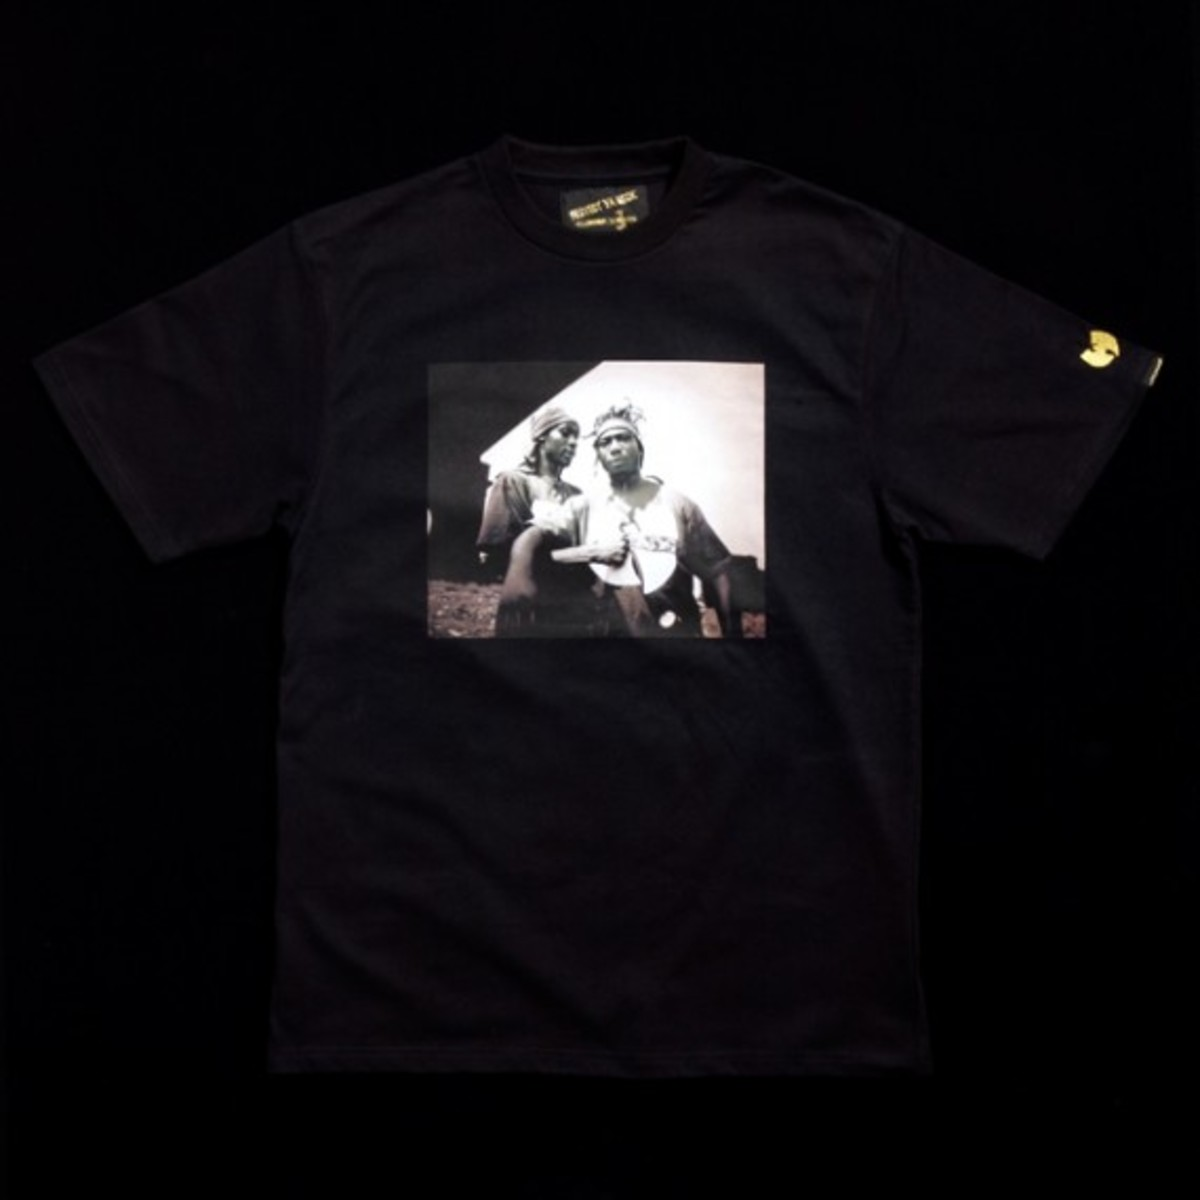 danny-hastings-photo-tshirt-black